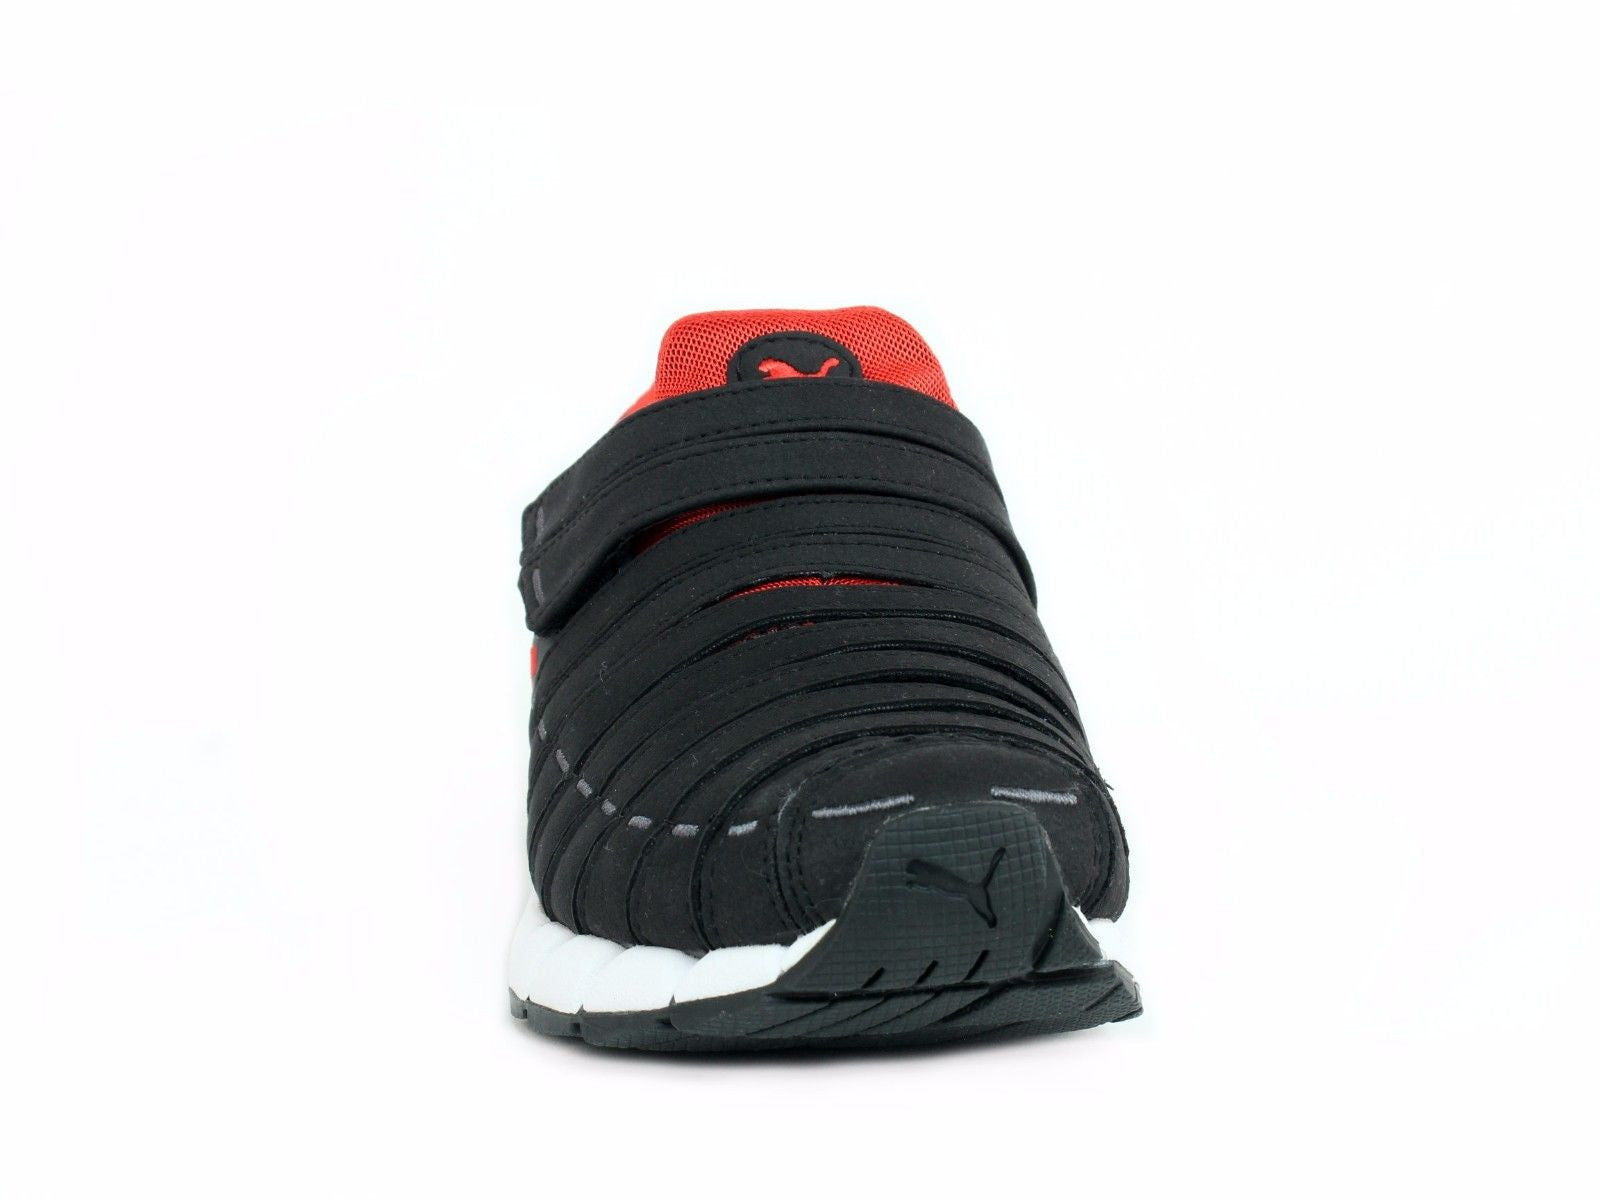 PUMA Osu NM Men s Running Athletic Shoes Sneakers Black Red ... aa7697bc0